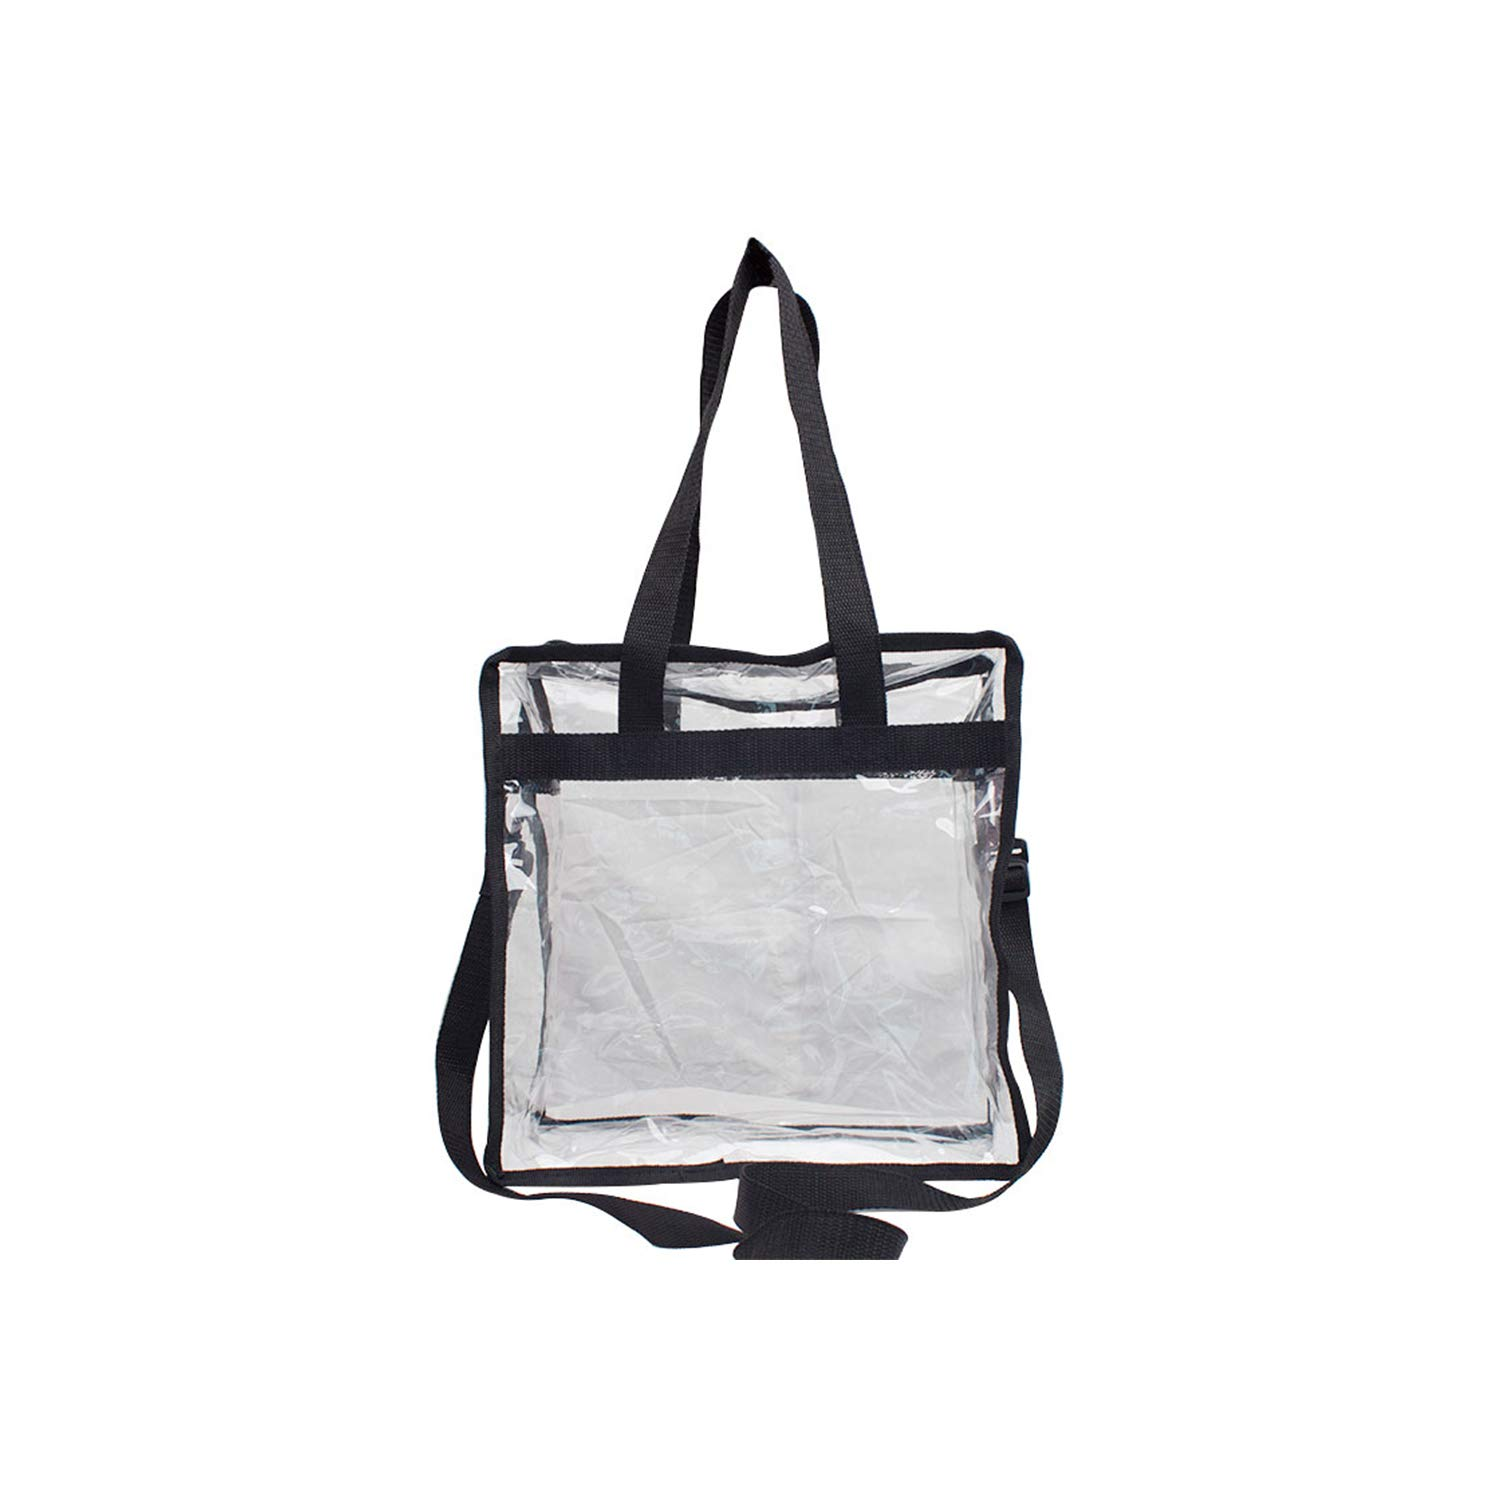 """Premium Clear Stadium Approved Bag - Clear Tote Bag with Cross Body Messenger Adjustable Shoulder Strap-12"""" X 12"""" X 6"""" by Zuess (Image #2)"""